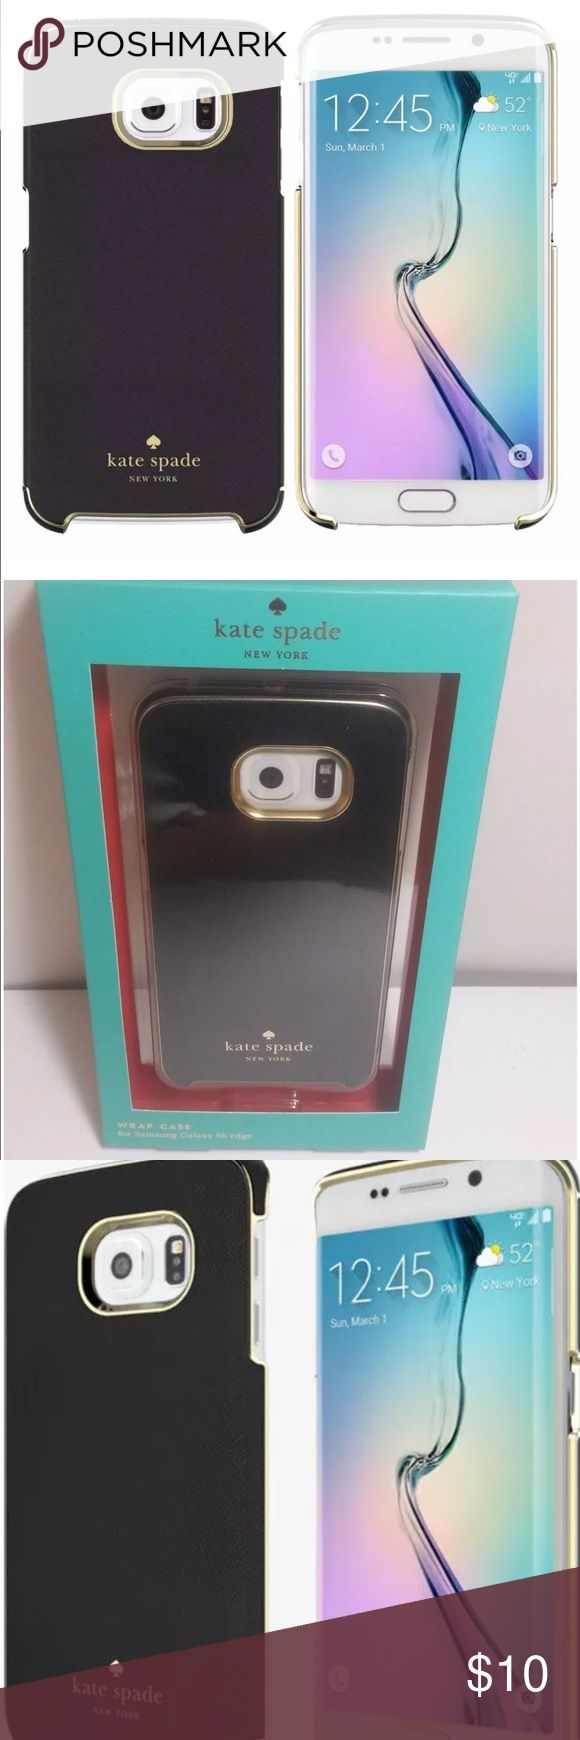 Black Gold Kate Spade Samsung Galaxy S6 Edge Case Damaged box, case is new Black and Gold Kate Spade New York wrap snap case cover for Samsung Galaxy S6 Edge kate spade Accessories Phone Cases